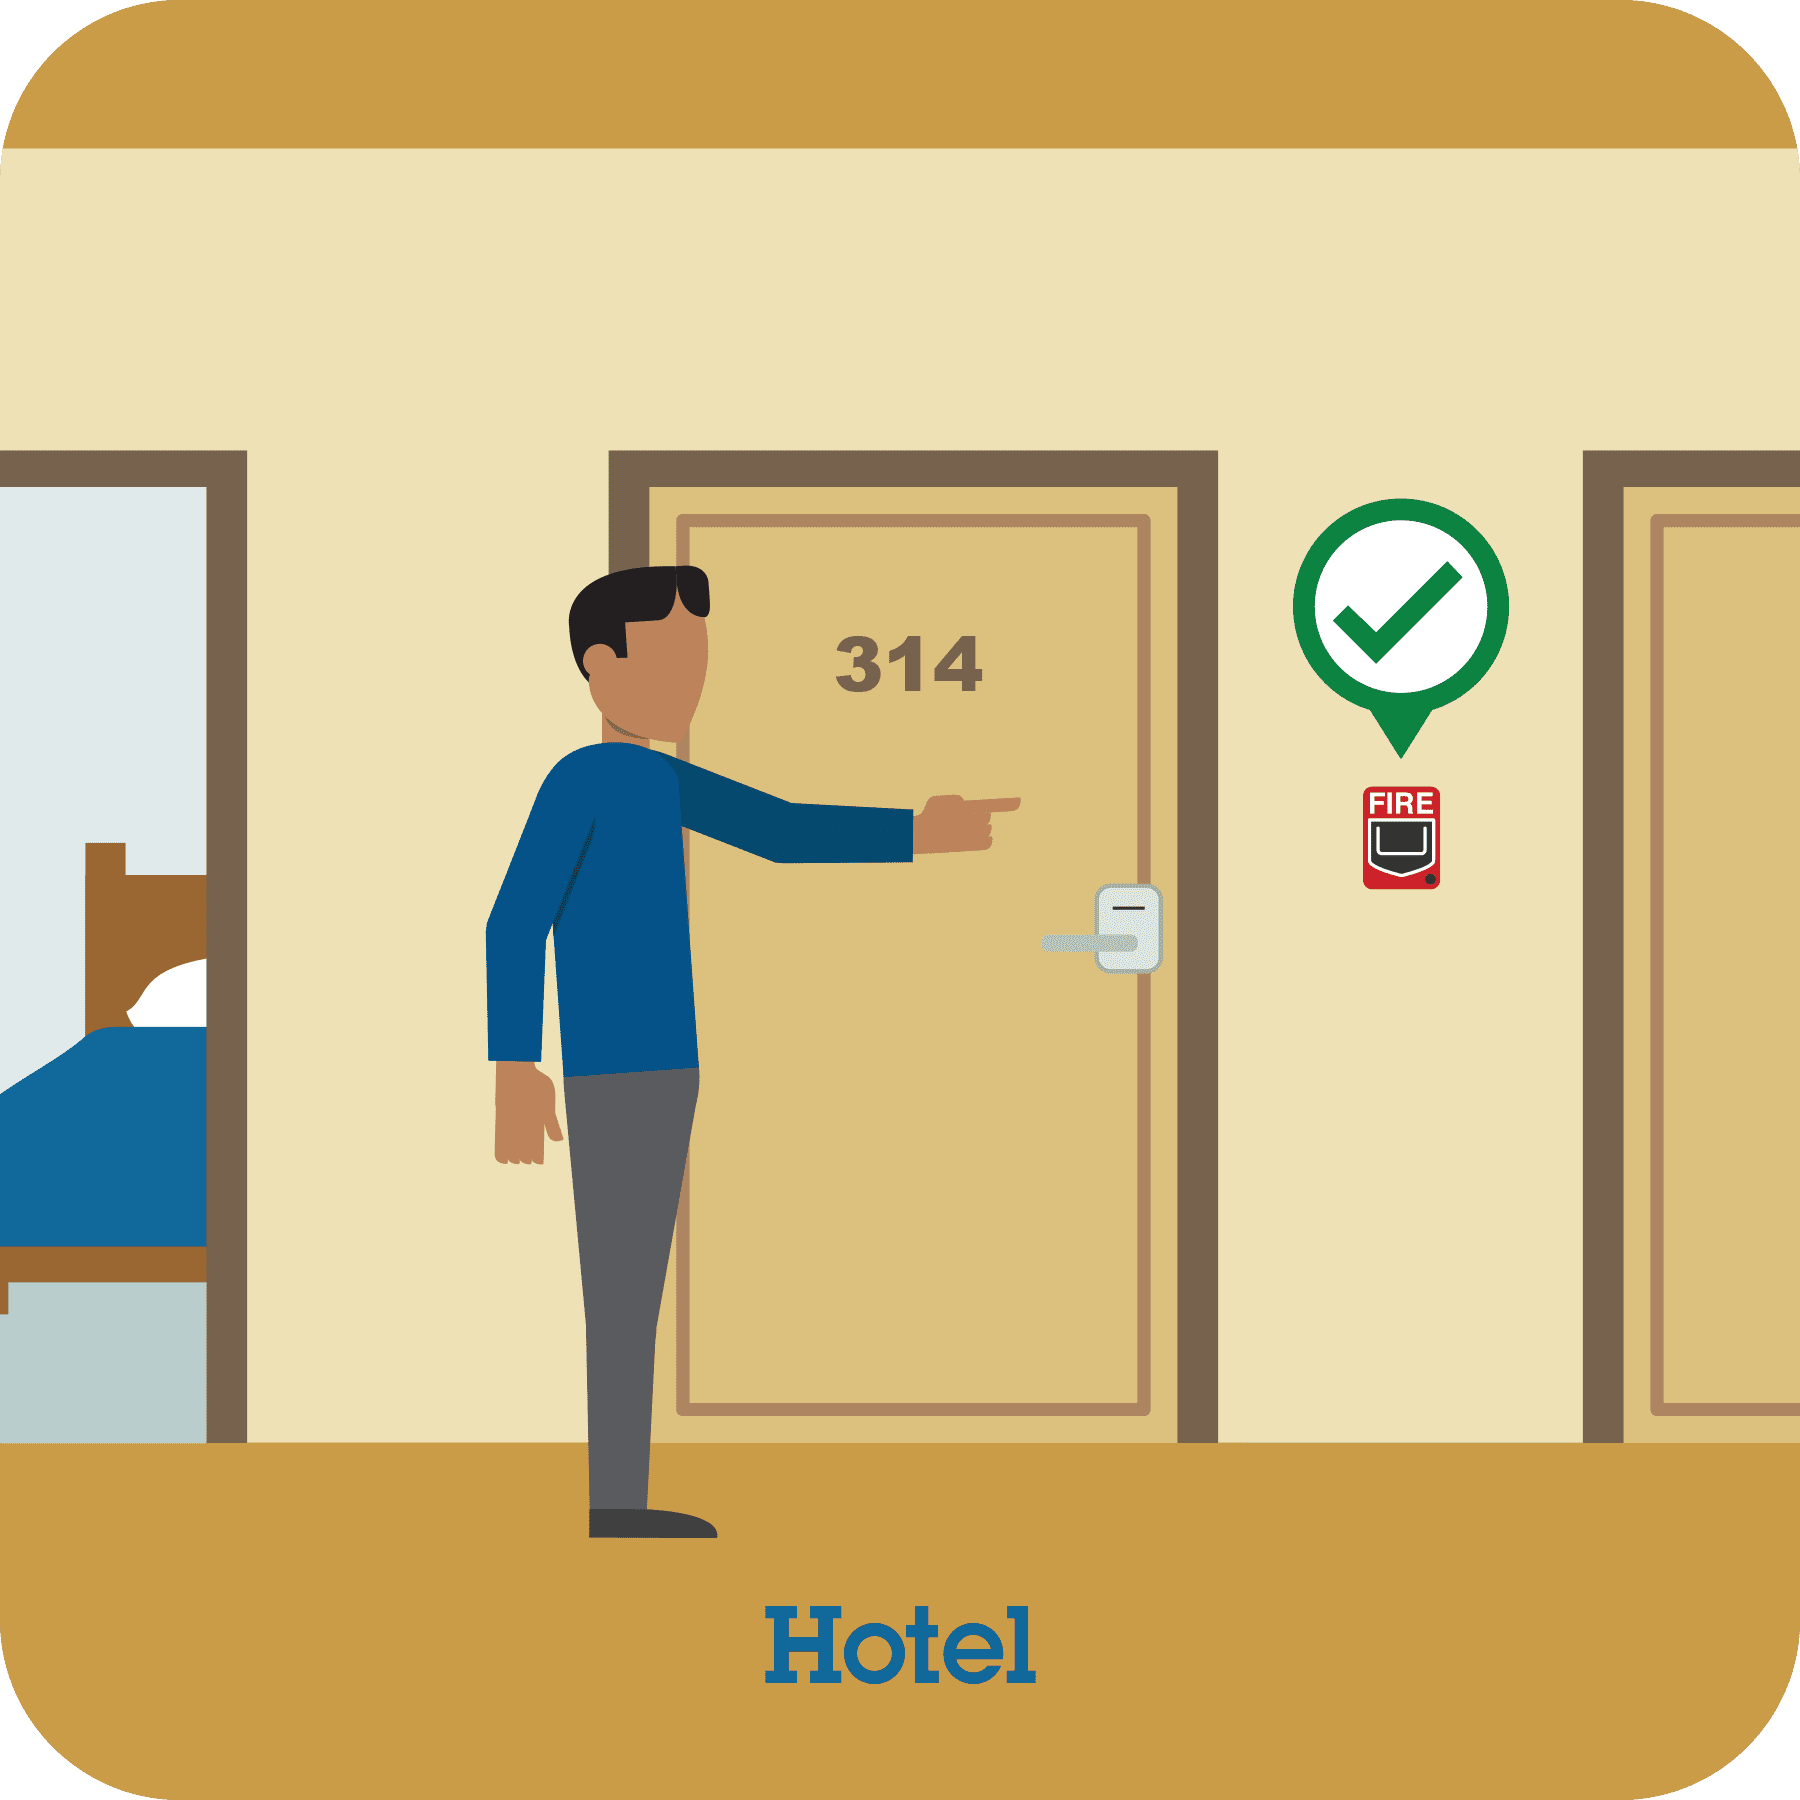 This pictograph shows a man finding a fire alarm on his hotel floor.